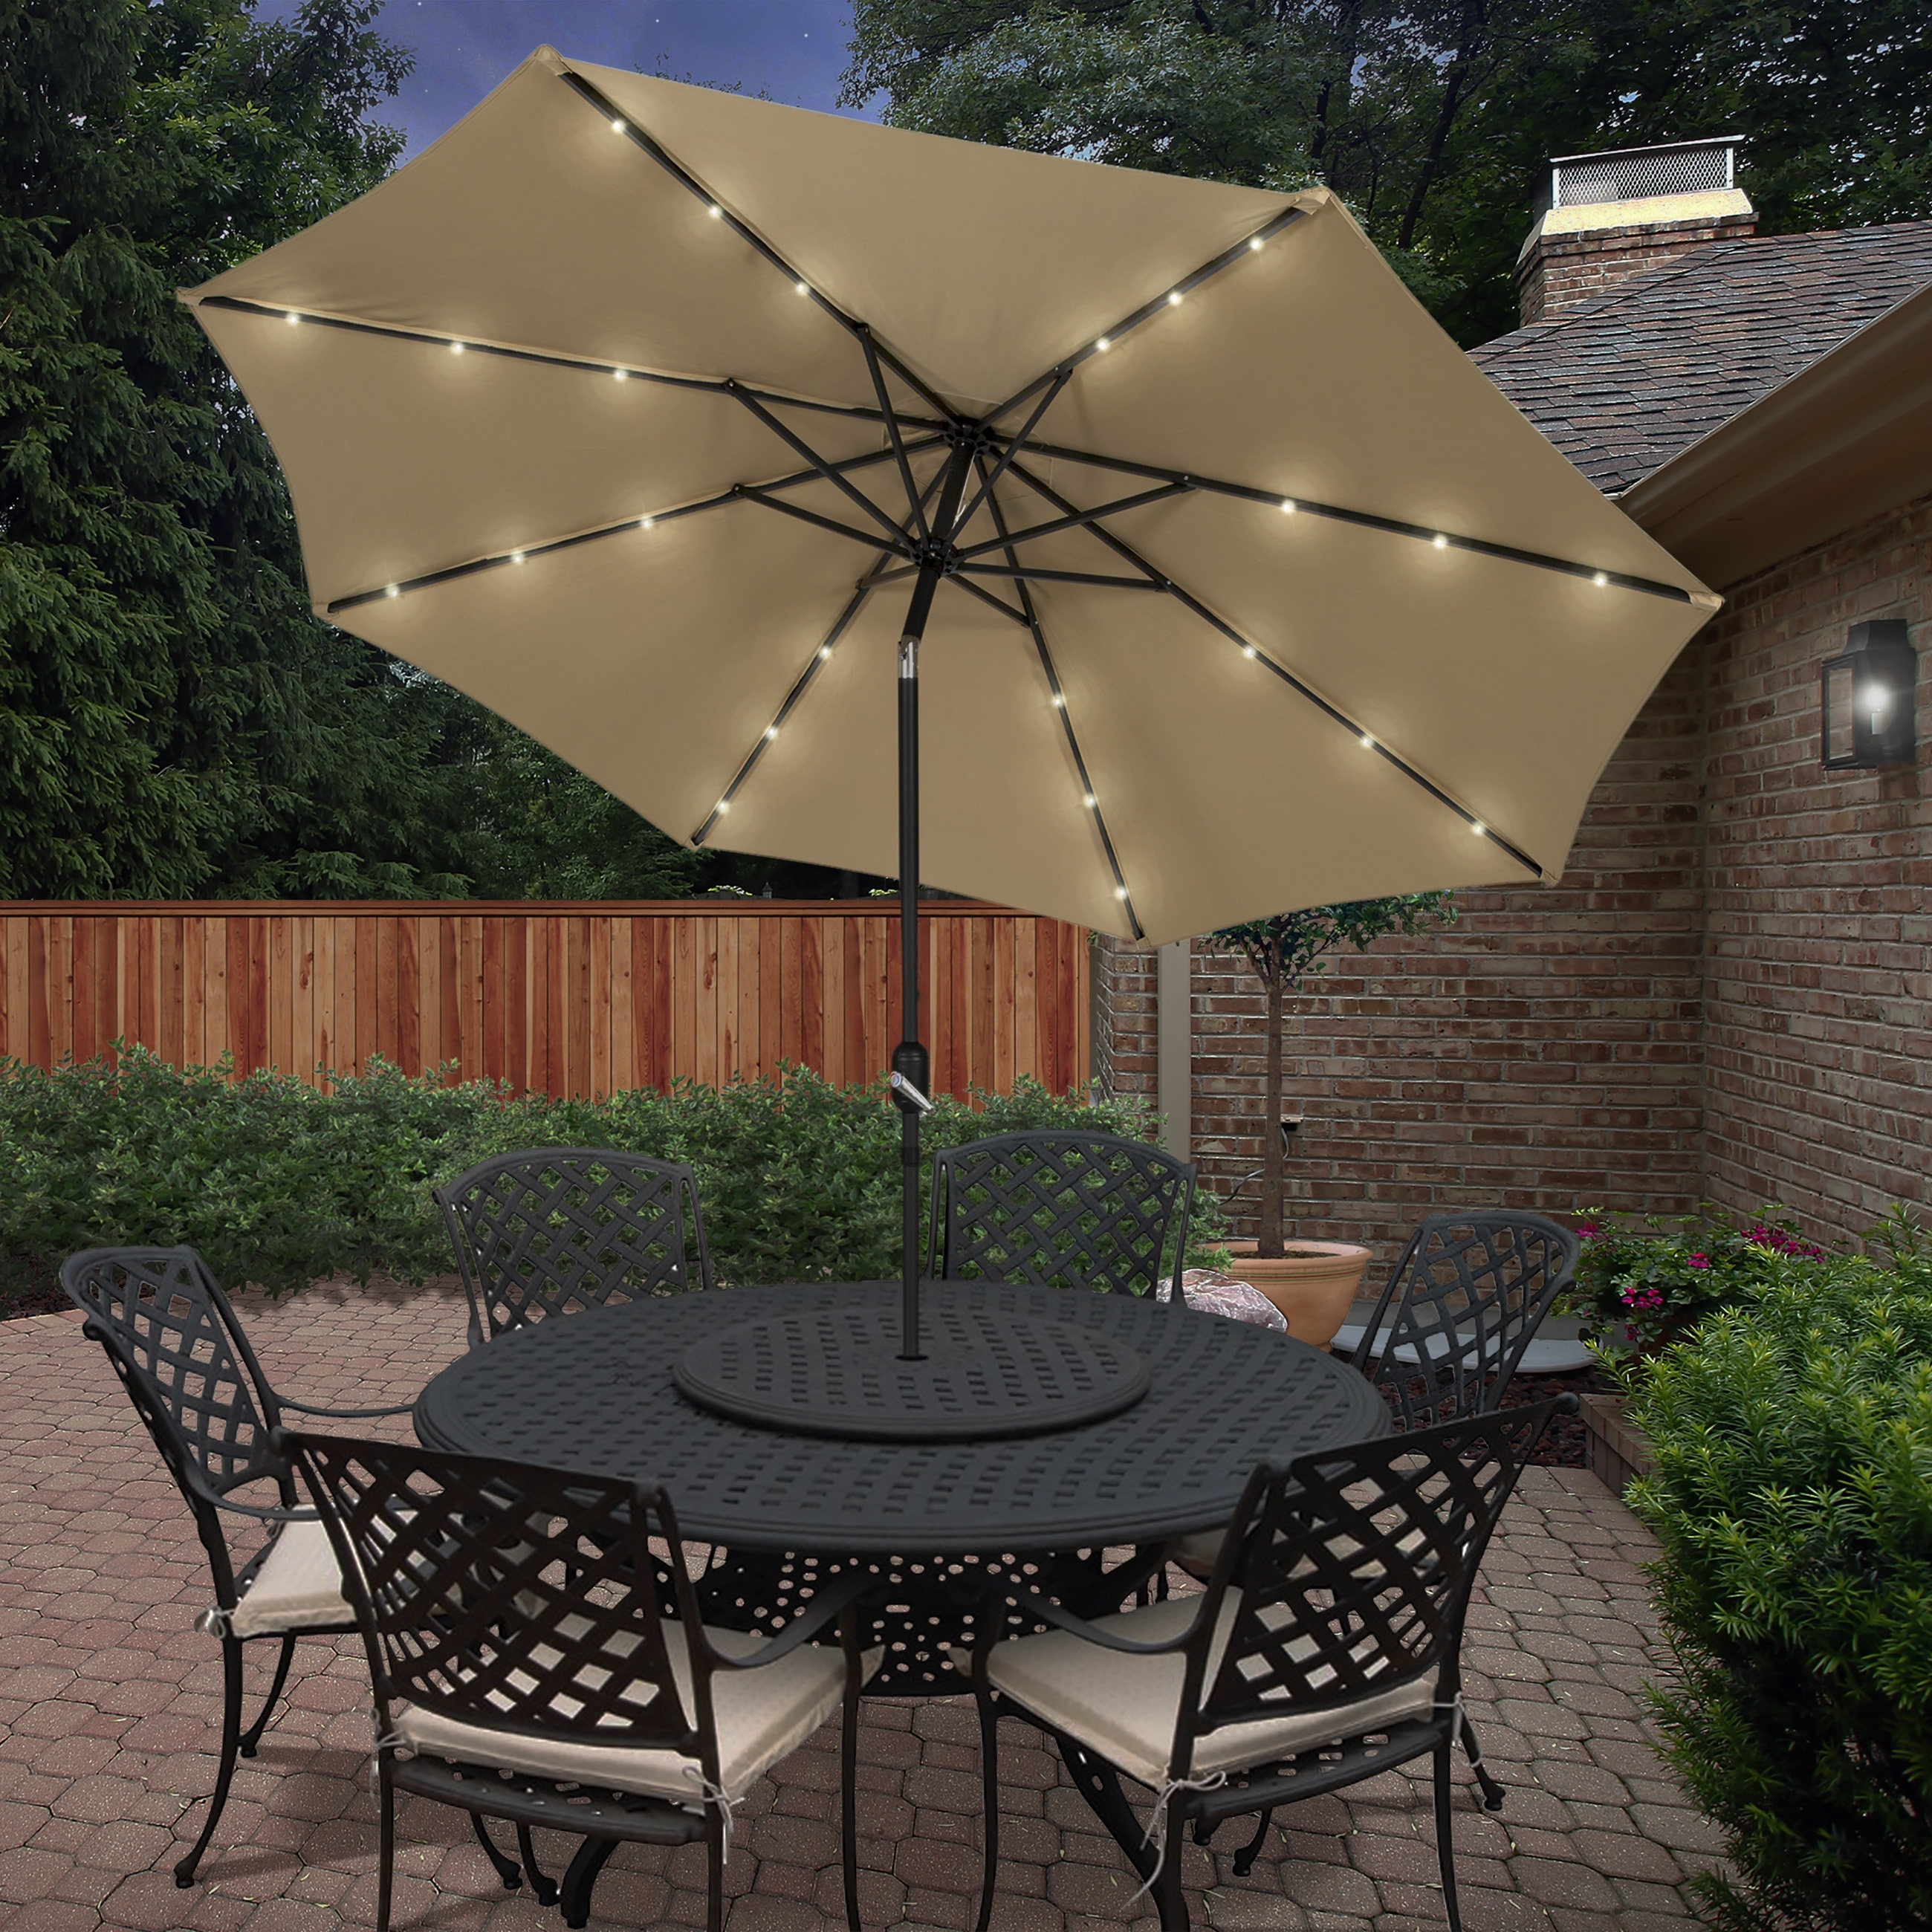 Most Recent Best Choice Products 10' Deluxe Solar Led Lighted Patio Umbrella Throughout Deluxe Patio Umbrellas (View 10 of 20)